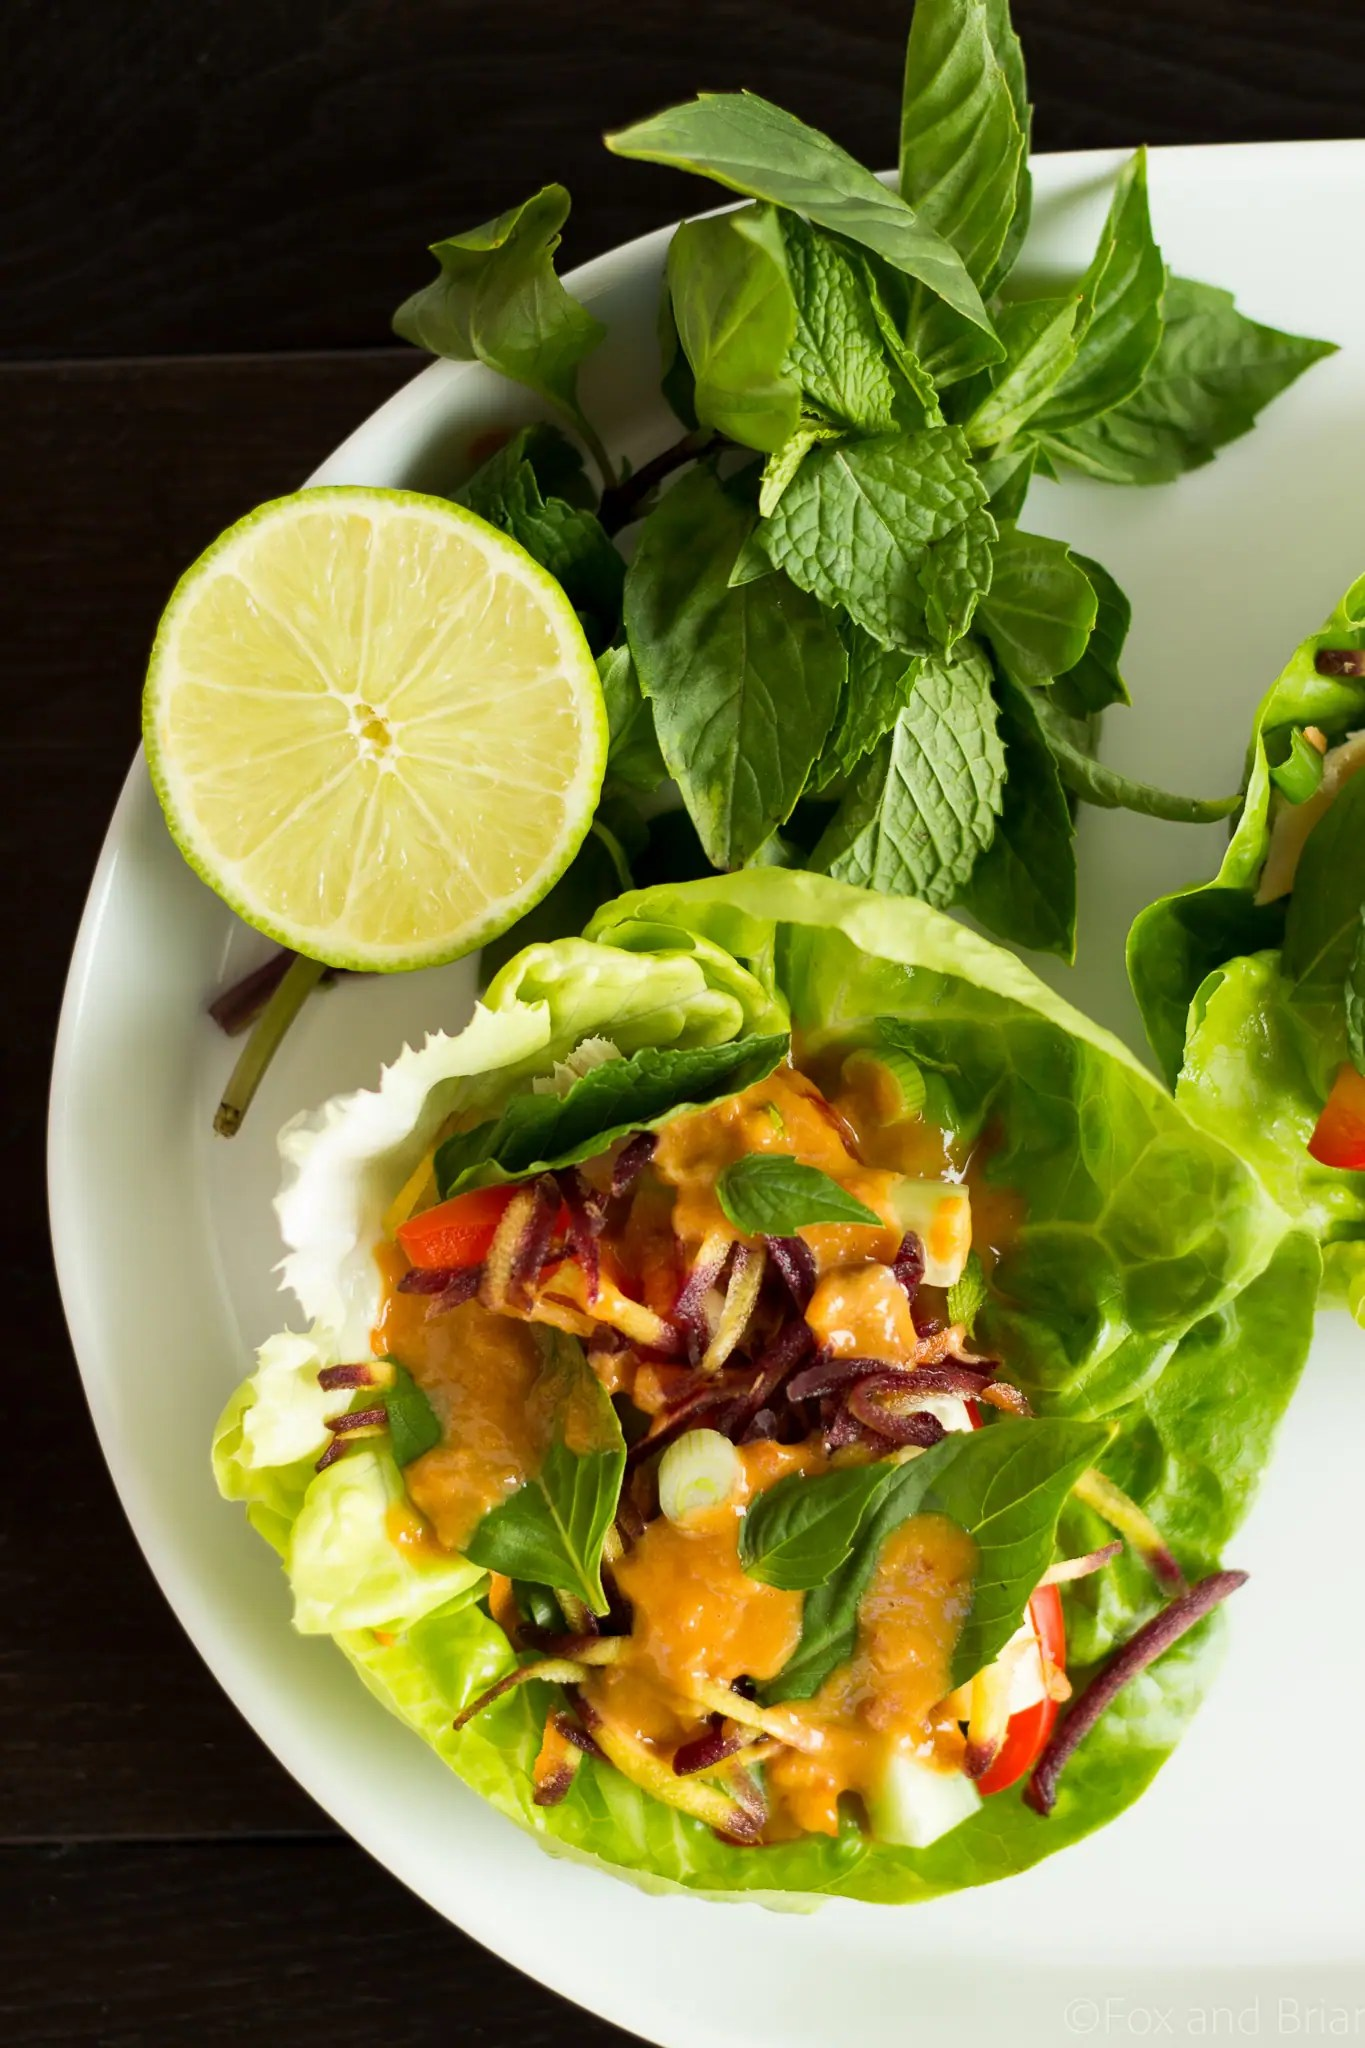 These Ginger peanut lettuce wraps are filled with colorful veggies, your protein of choice, and the most addictive peanut sauce ever!